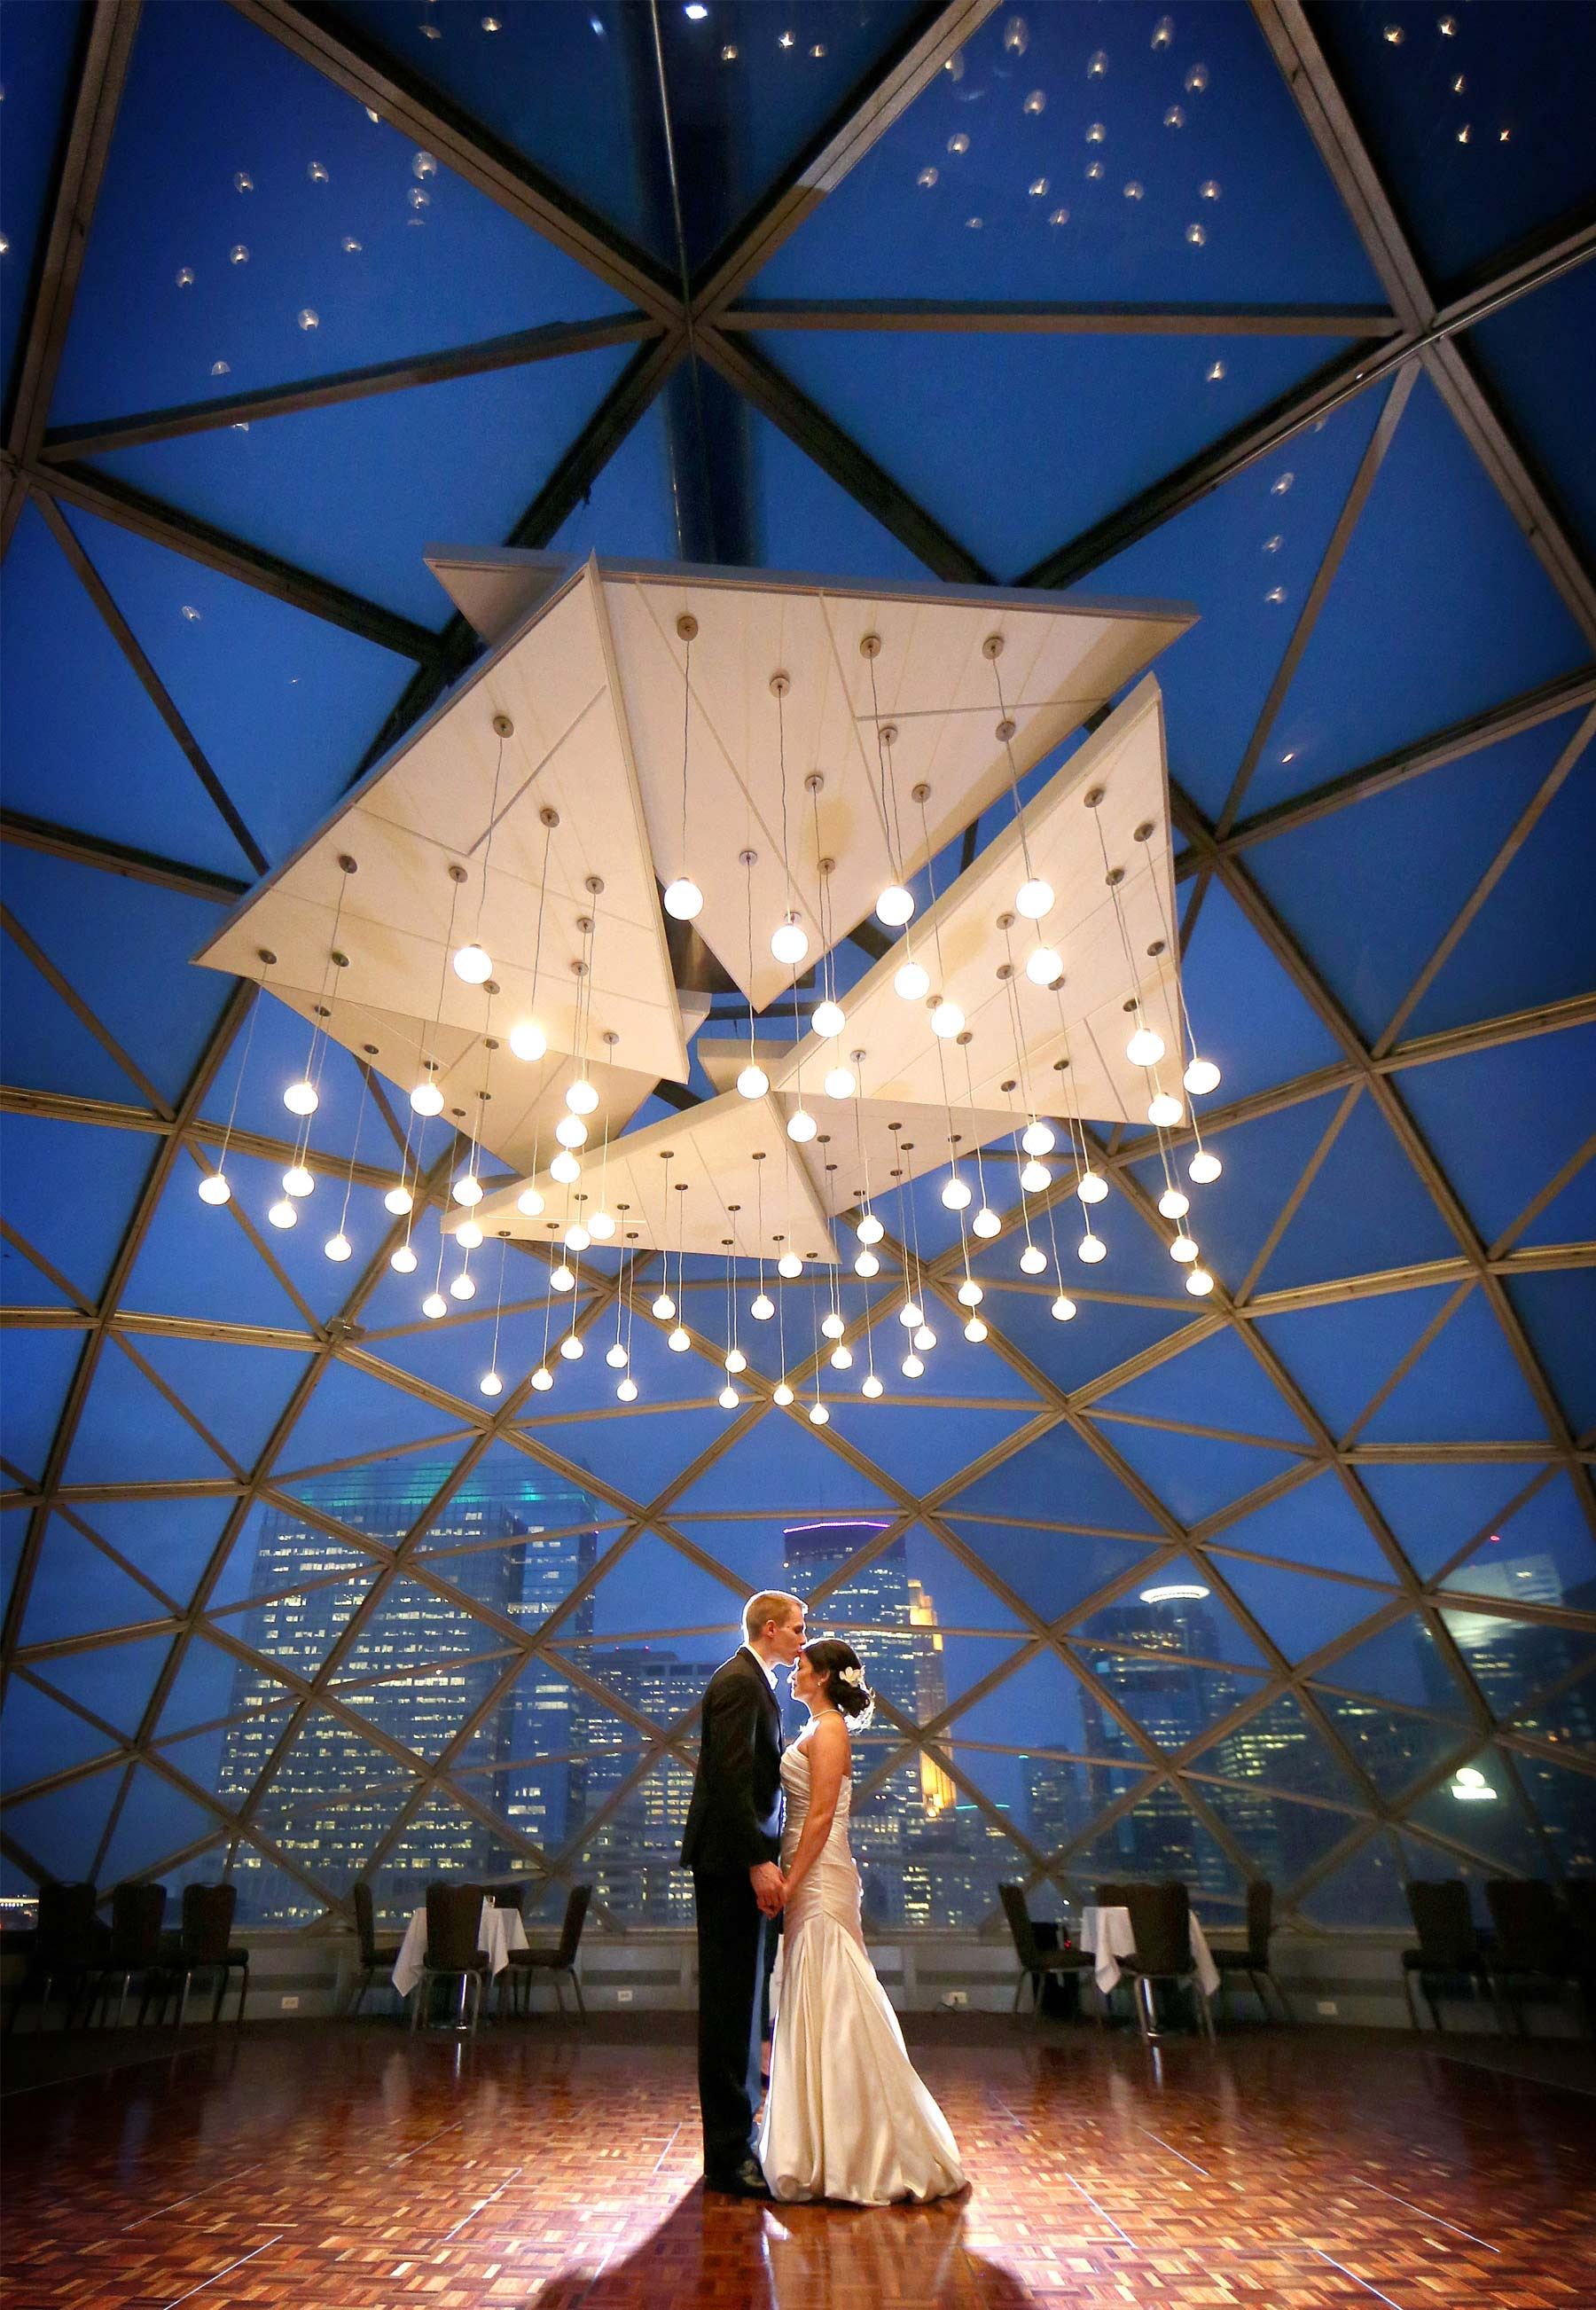 25-Minneapolis-Minnesota-Wedding-Photographer-by-Andrew-Vick-Photography-Fall-Autumn-Millennium-Hotel-Reception-Bride-Groom-Dance-Night-Skyline-Kiss-Vintage-Amanda-and-Cary.jpg